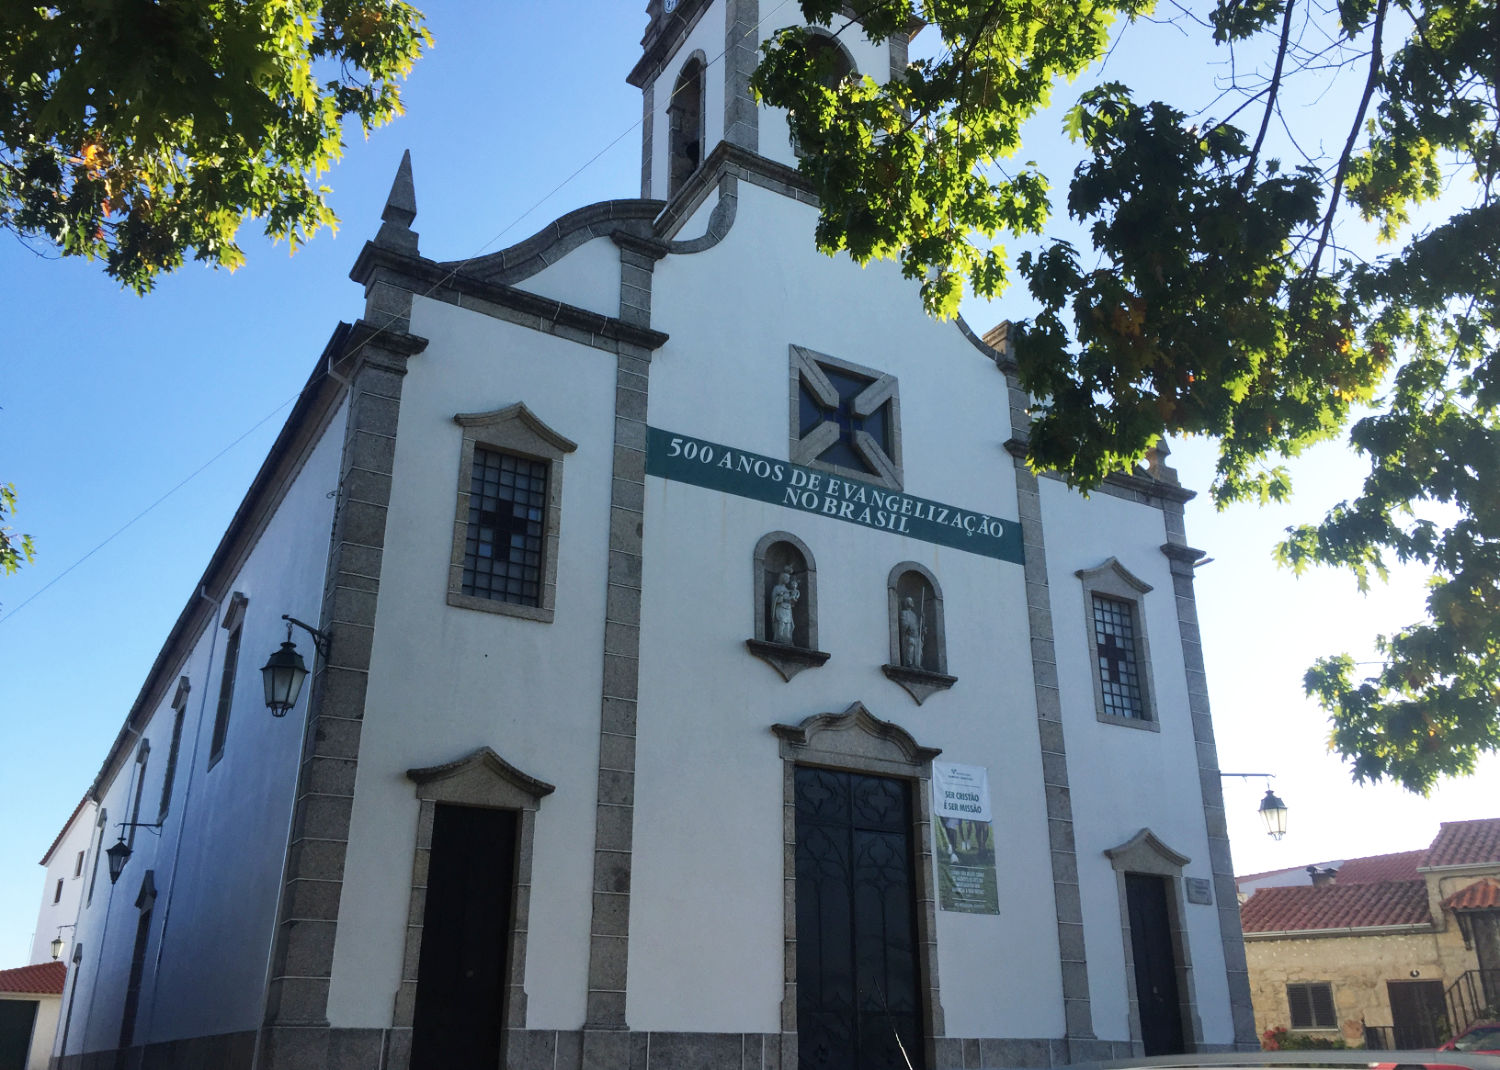 The parish church in Belmonte with its banner proclaiming 550 years of evangelisation in Brazil